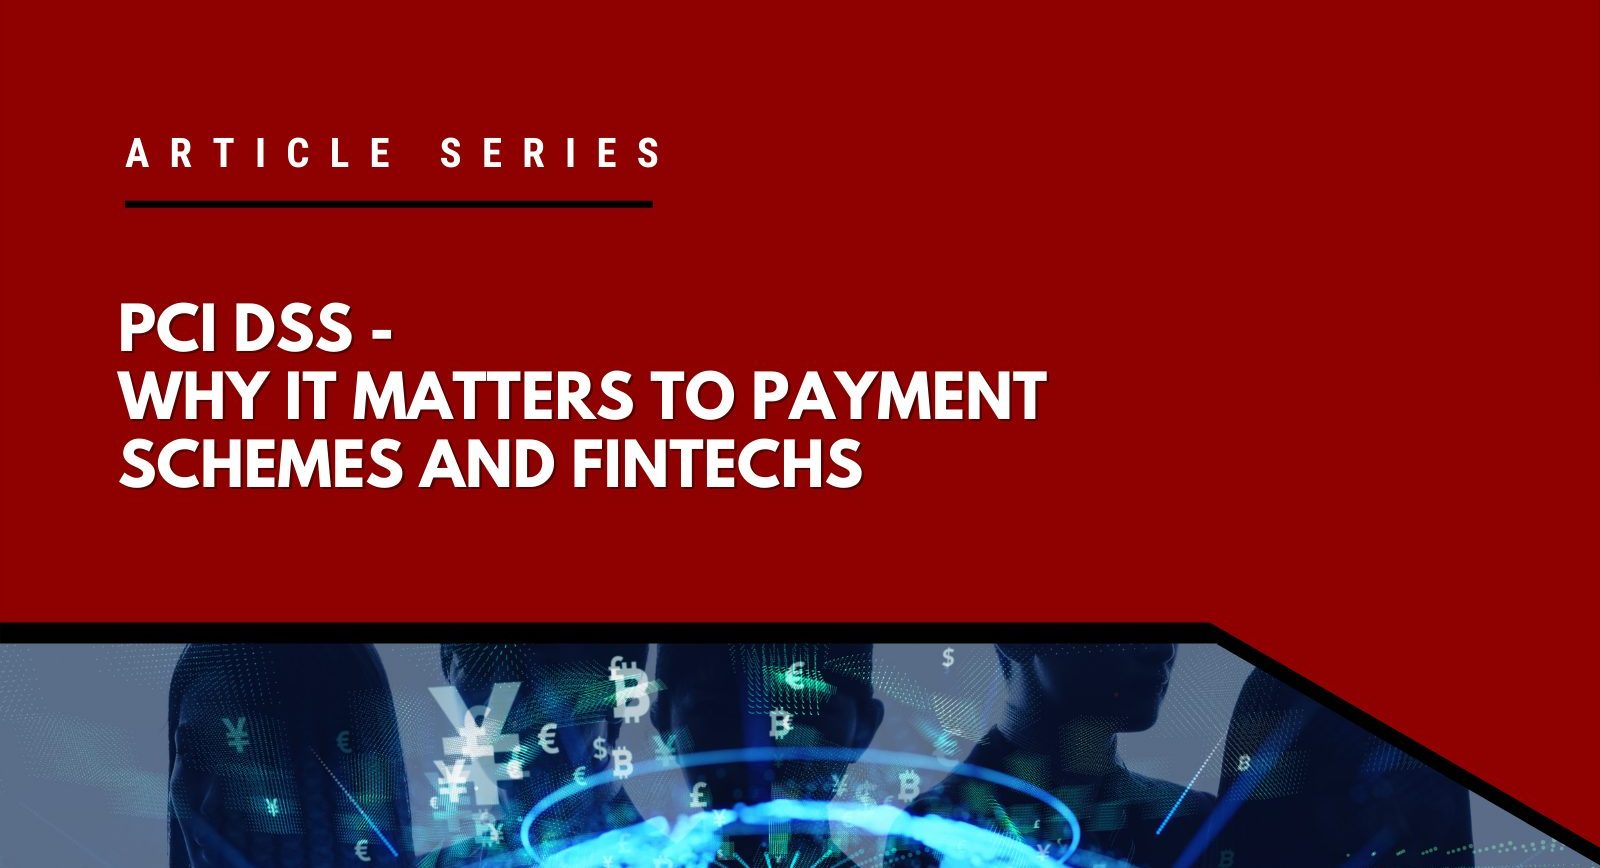 PCI DSS – Why it matters to payment schemes and fintechs